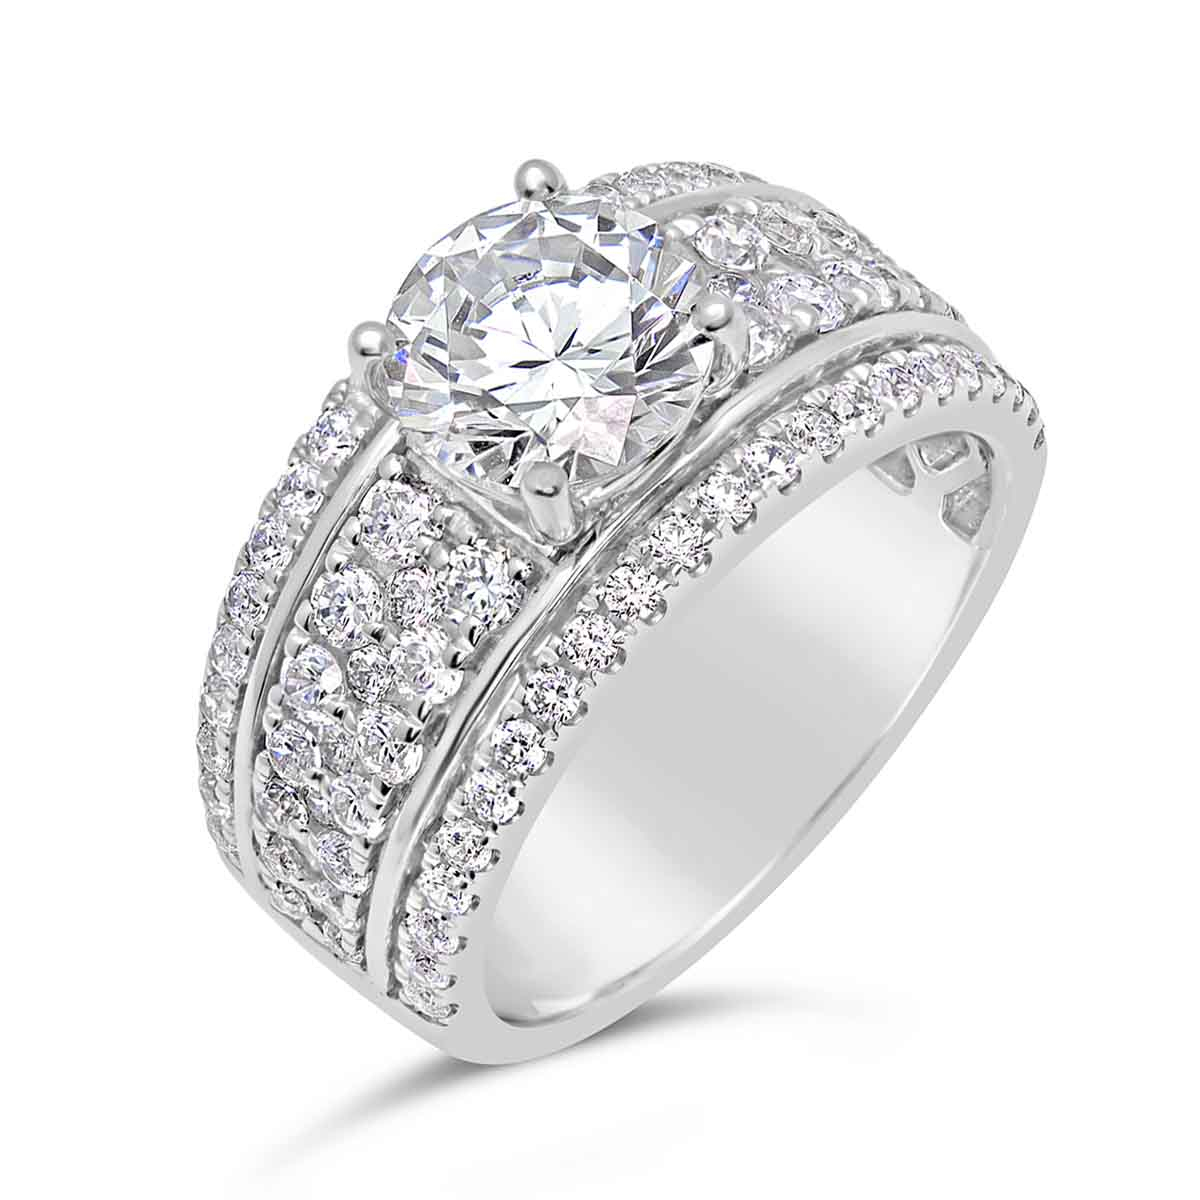 Diamond Engagement Ring With Wide Band – The Diamond Guys Collection With Current Wide Diamond Wedding Bands (Gallery 23 of 25)